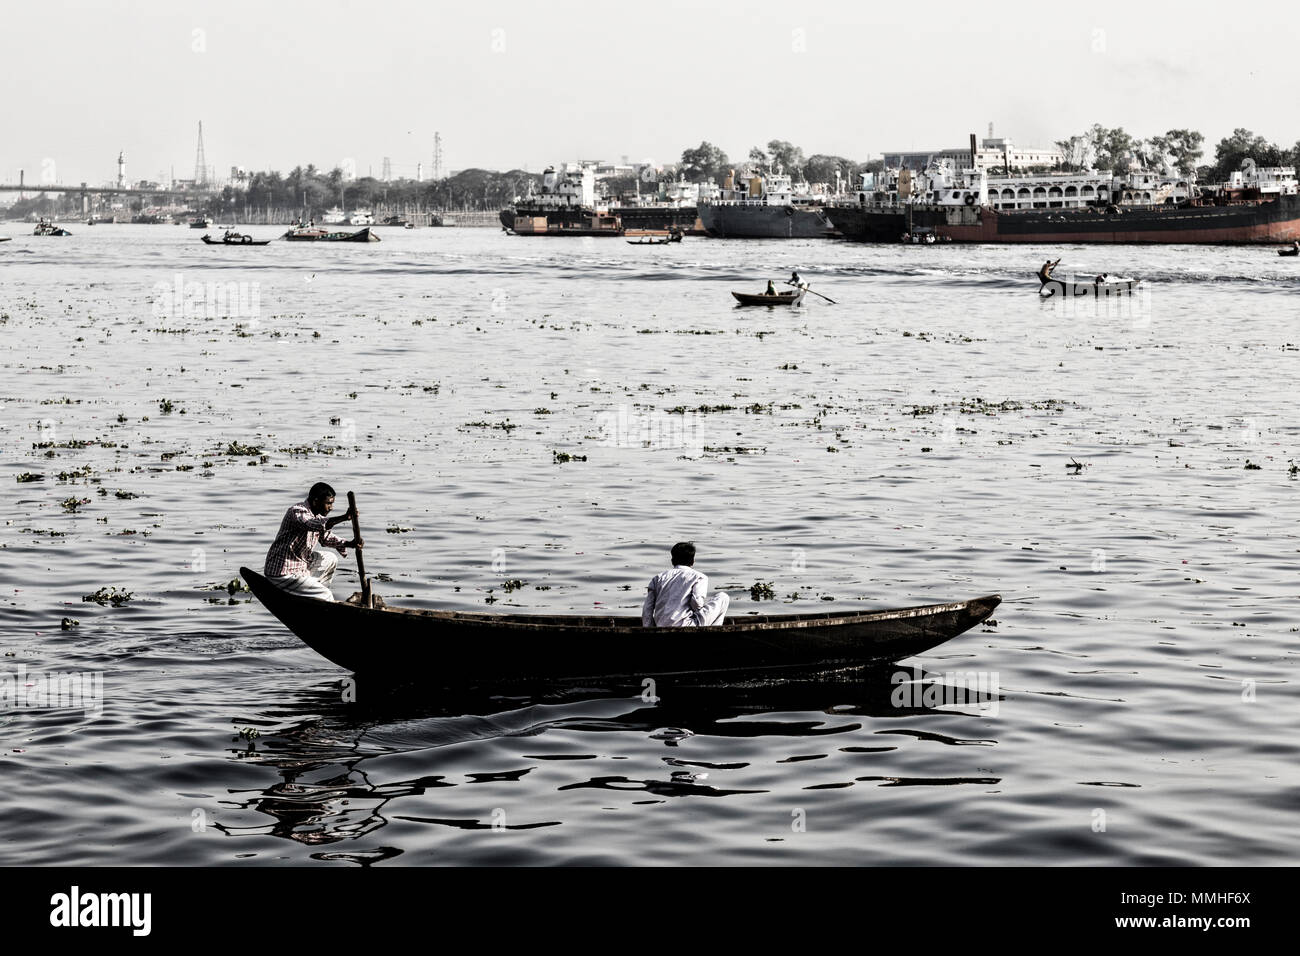 Dhaka, Bangladesh, February 24 2017: Rowing boats on the Buriganga River in Dhaka Bangladesh and in the background the old shipyard (Vintage Photo) - Stock Image